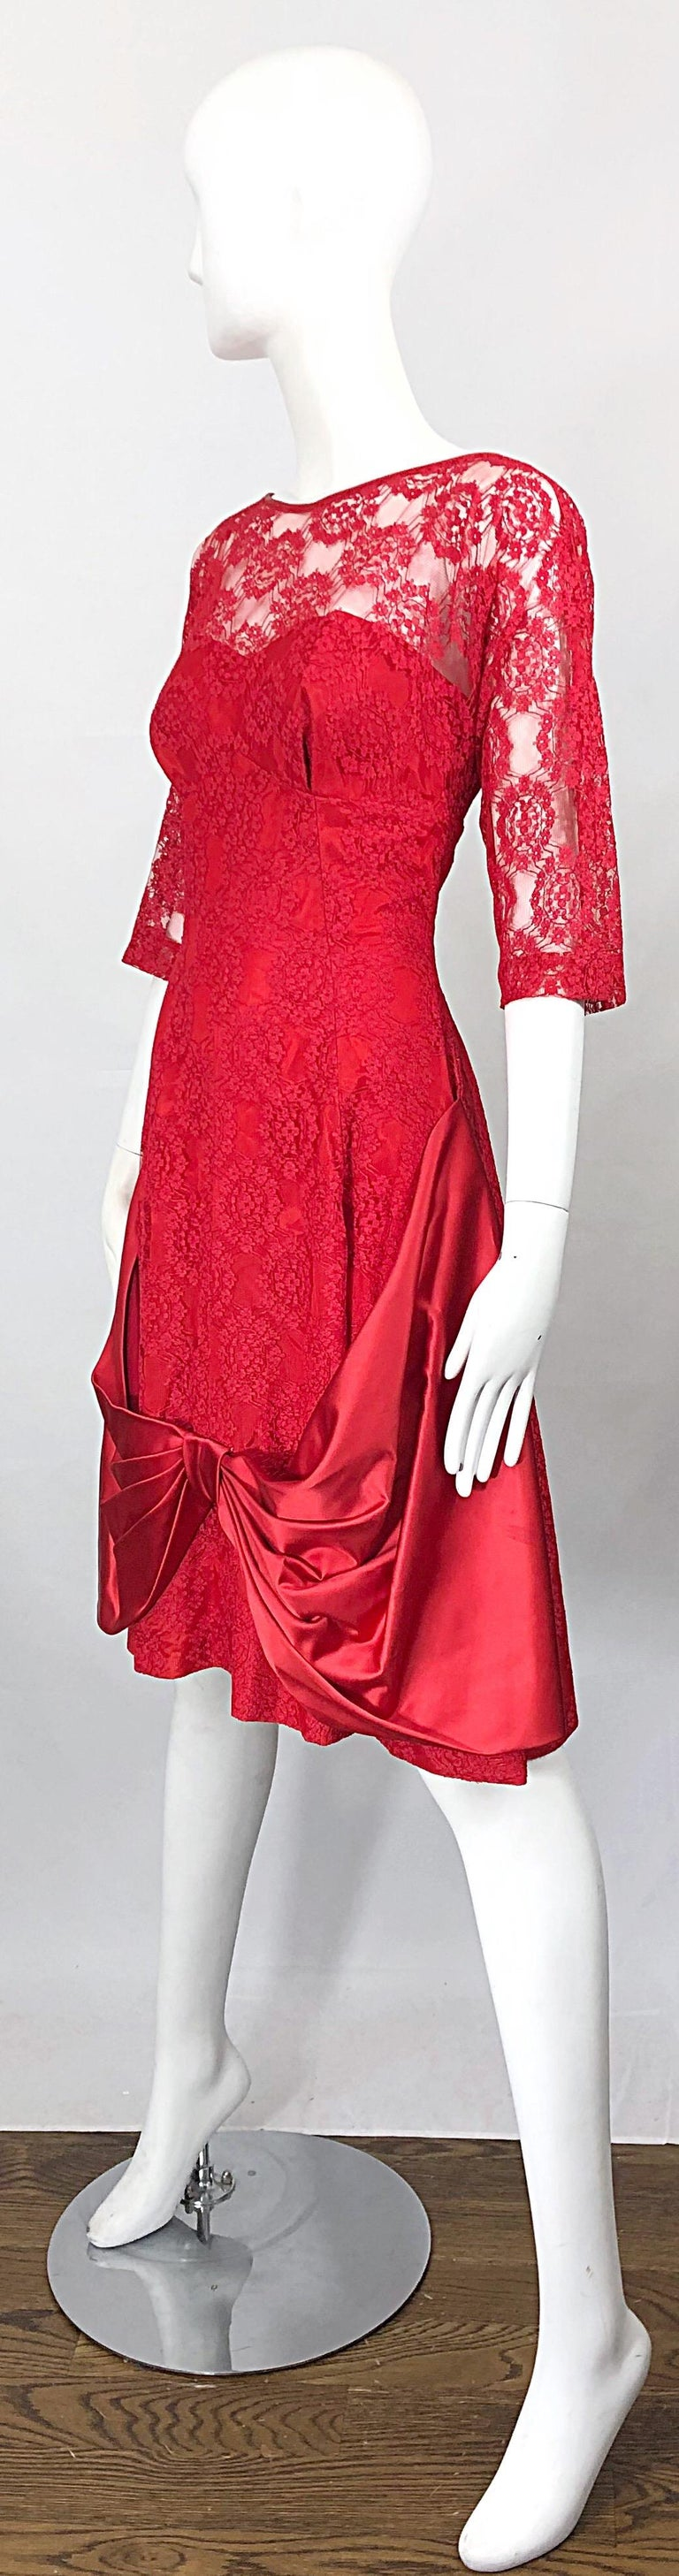 1950s Demi Couture Lips Stick Red Silk Lace 3/4 Sleeve Vintage 50s Dress For Sale 6